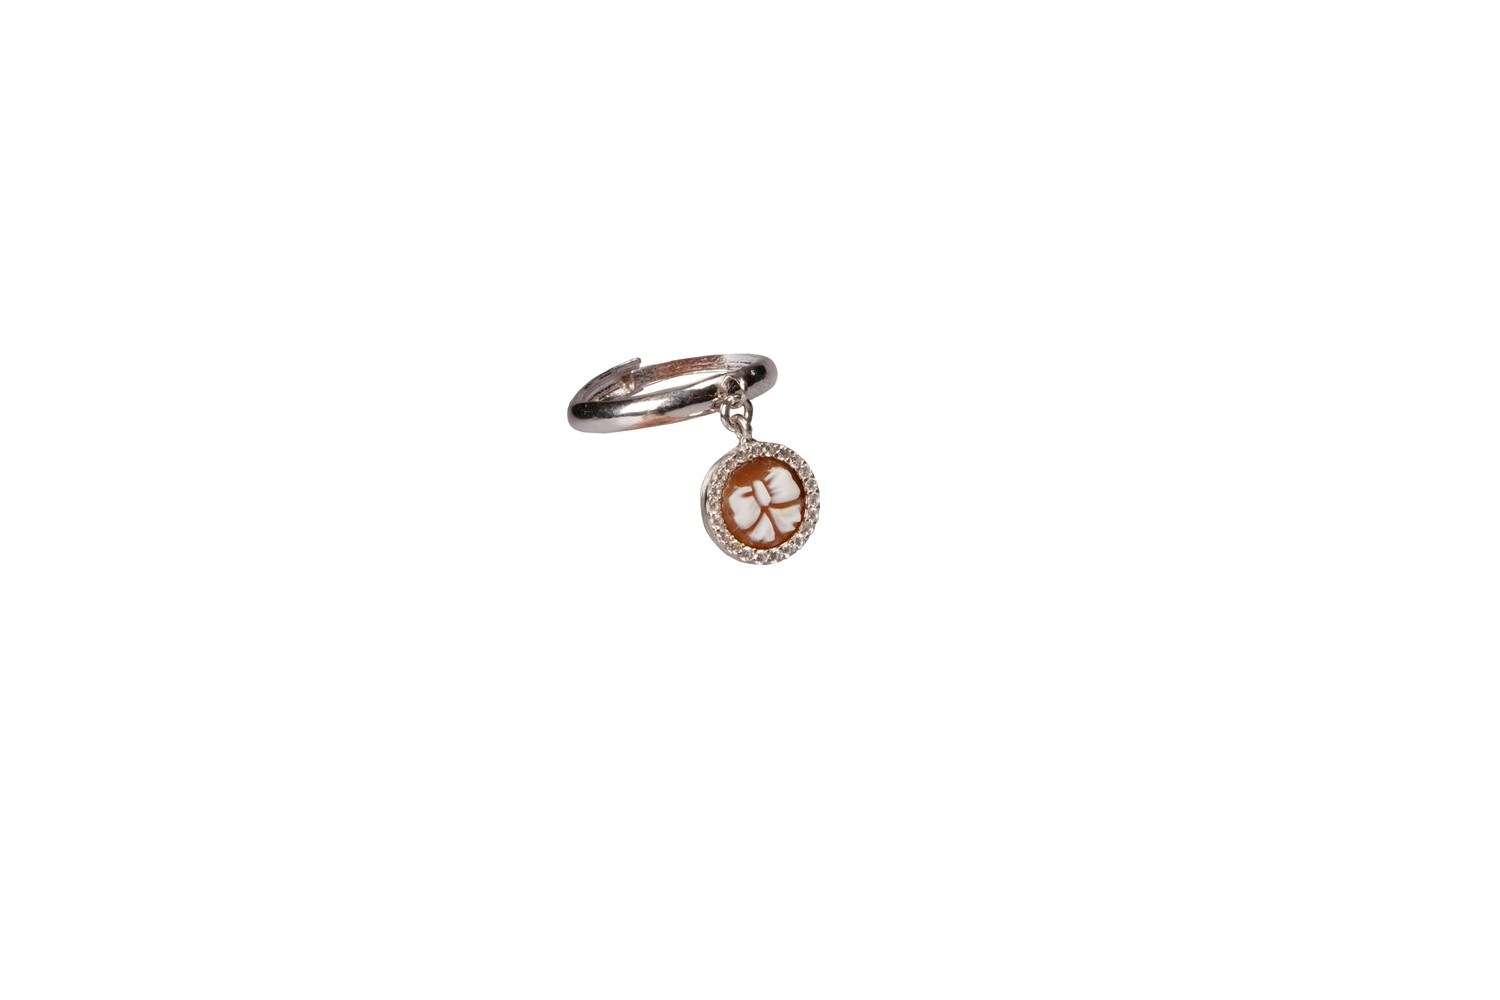 Anello regolabile in argento 925 con charms in cammeo lavorato a mano 8 mm e zirconi - Adjustable ring in 925 silver with charms in handmade cameo 8 mm and cubic zirconia